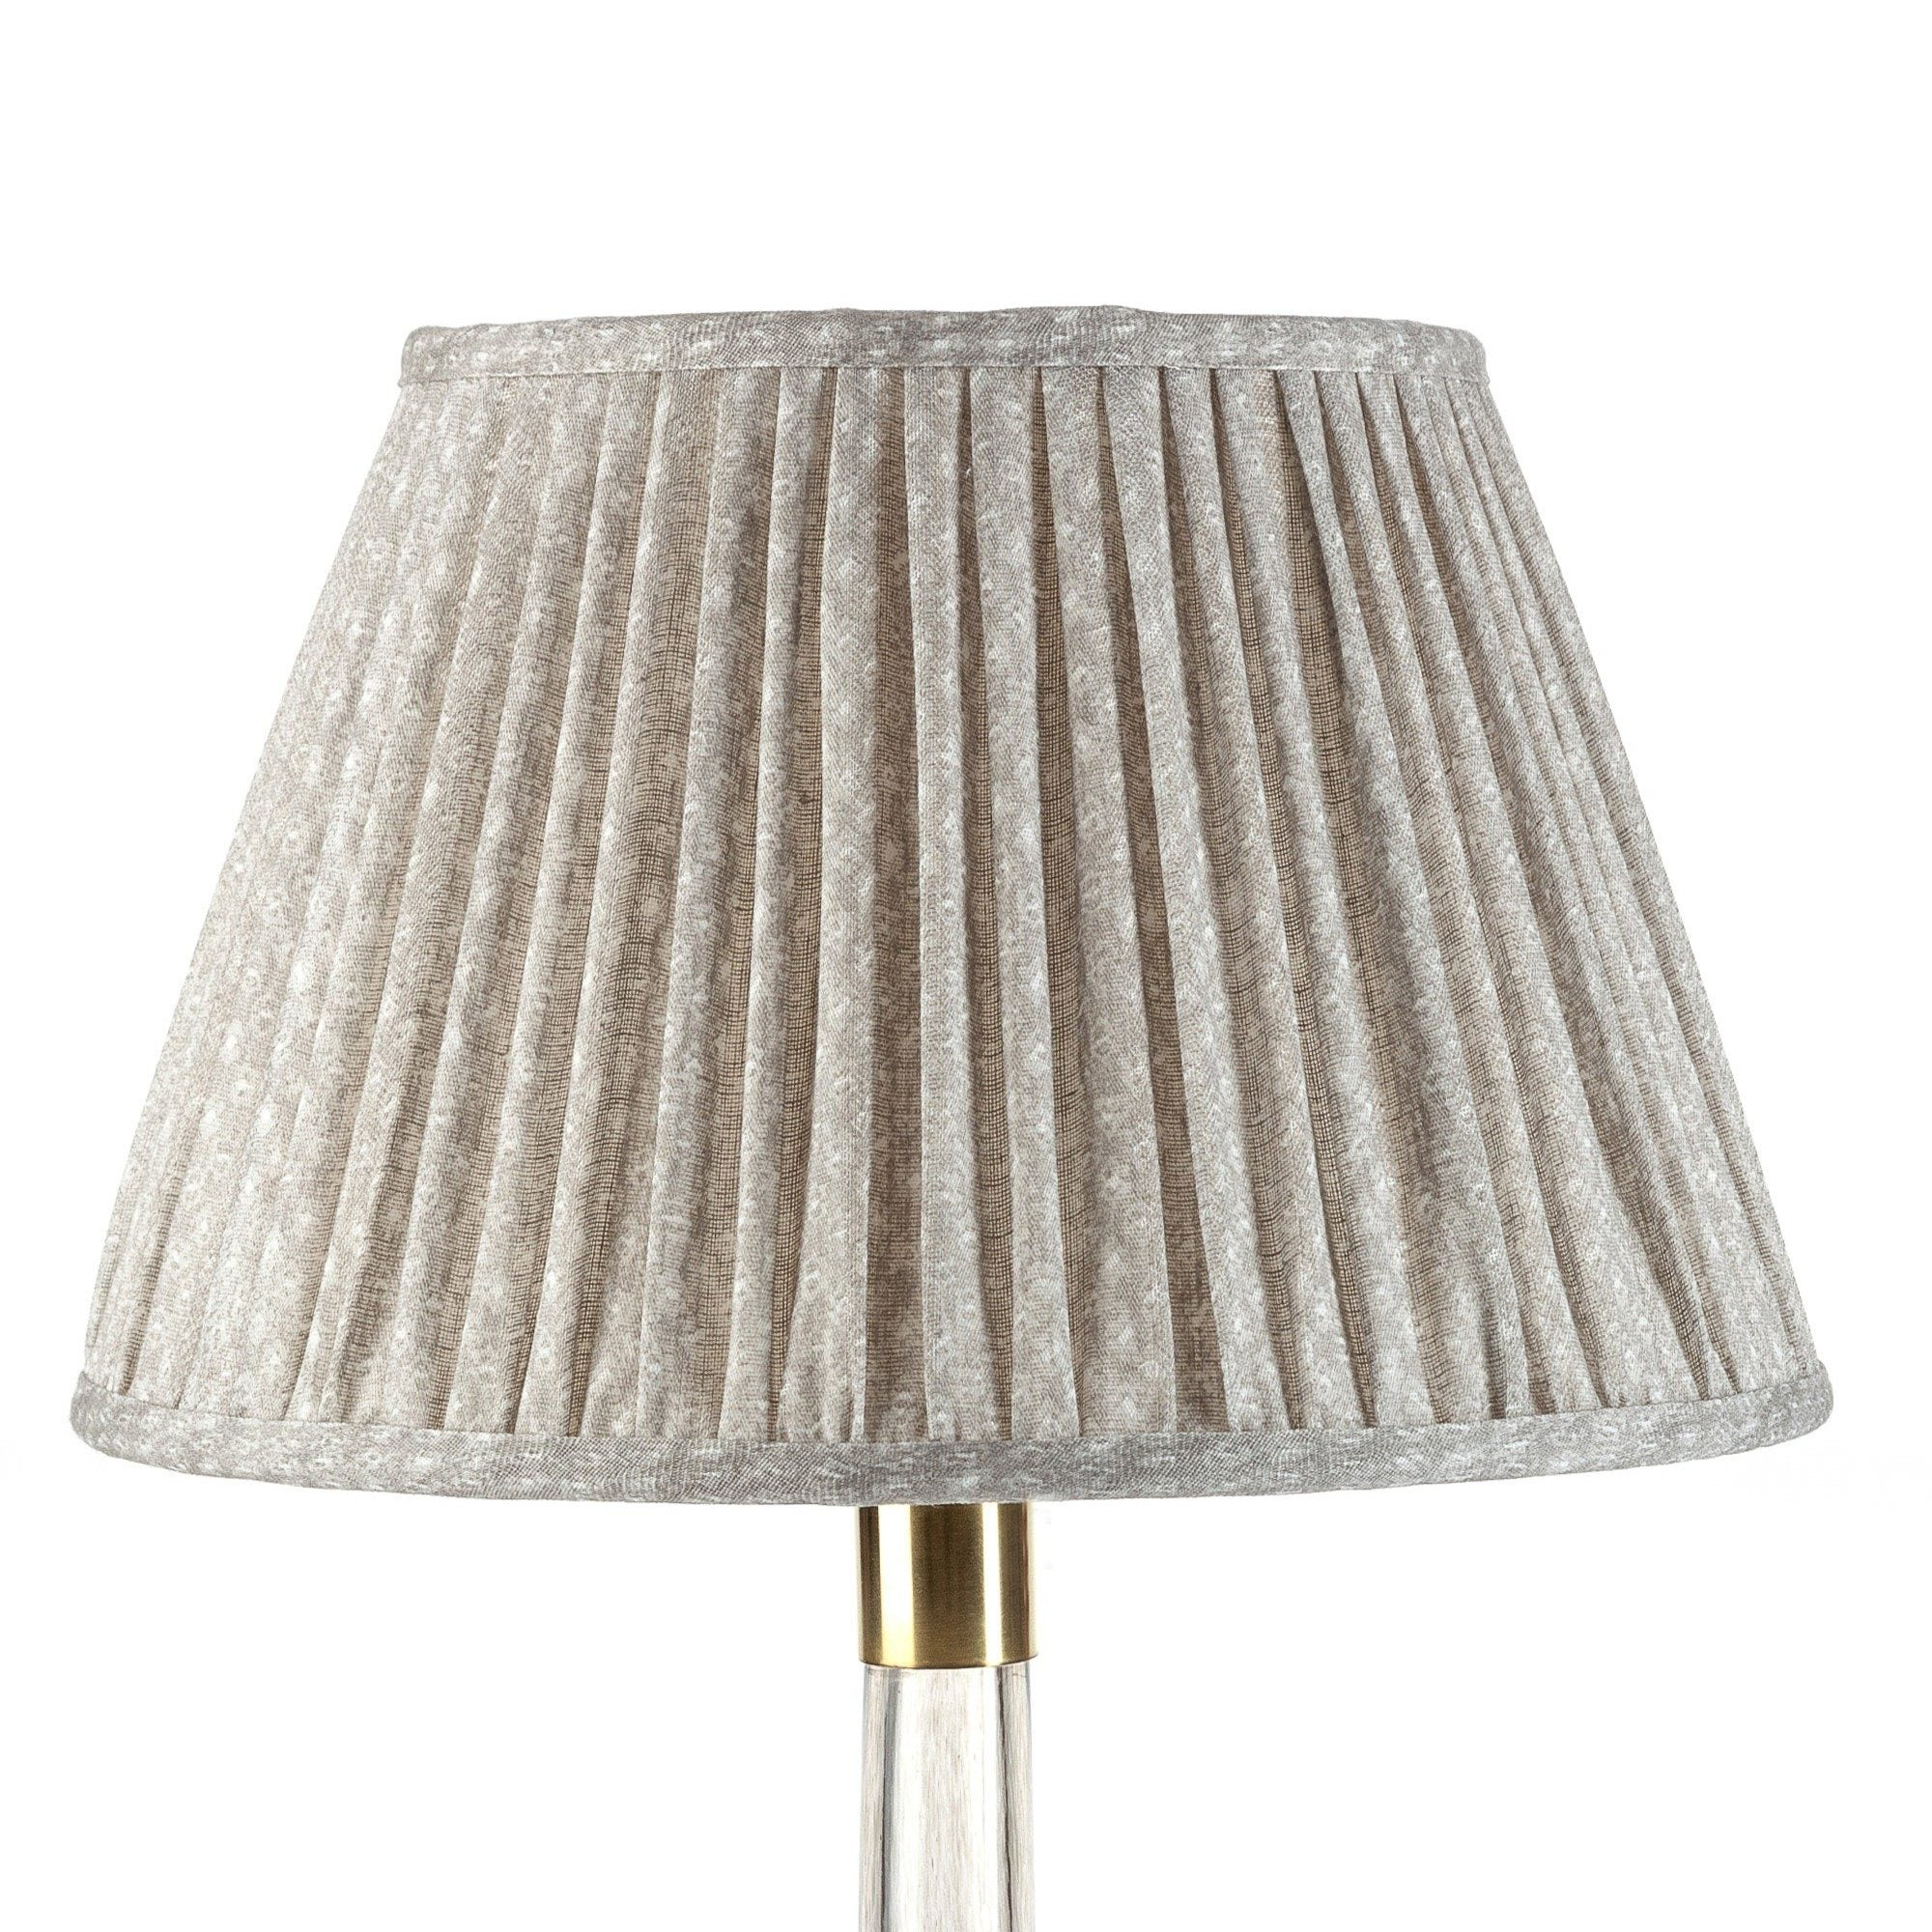 Fermoie Lampshade in Grey Figured